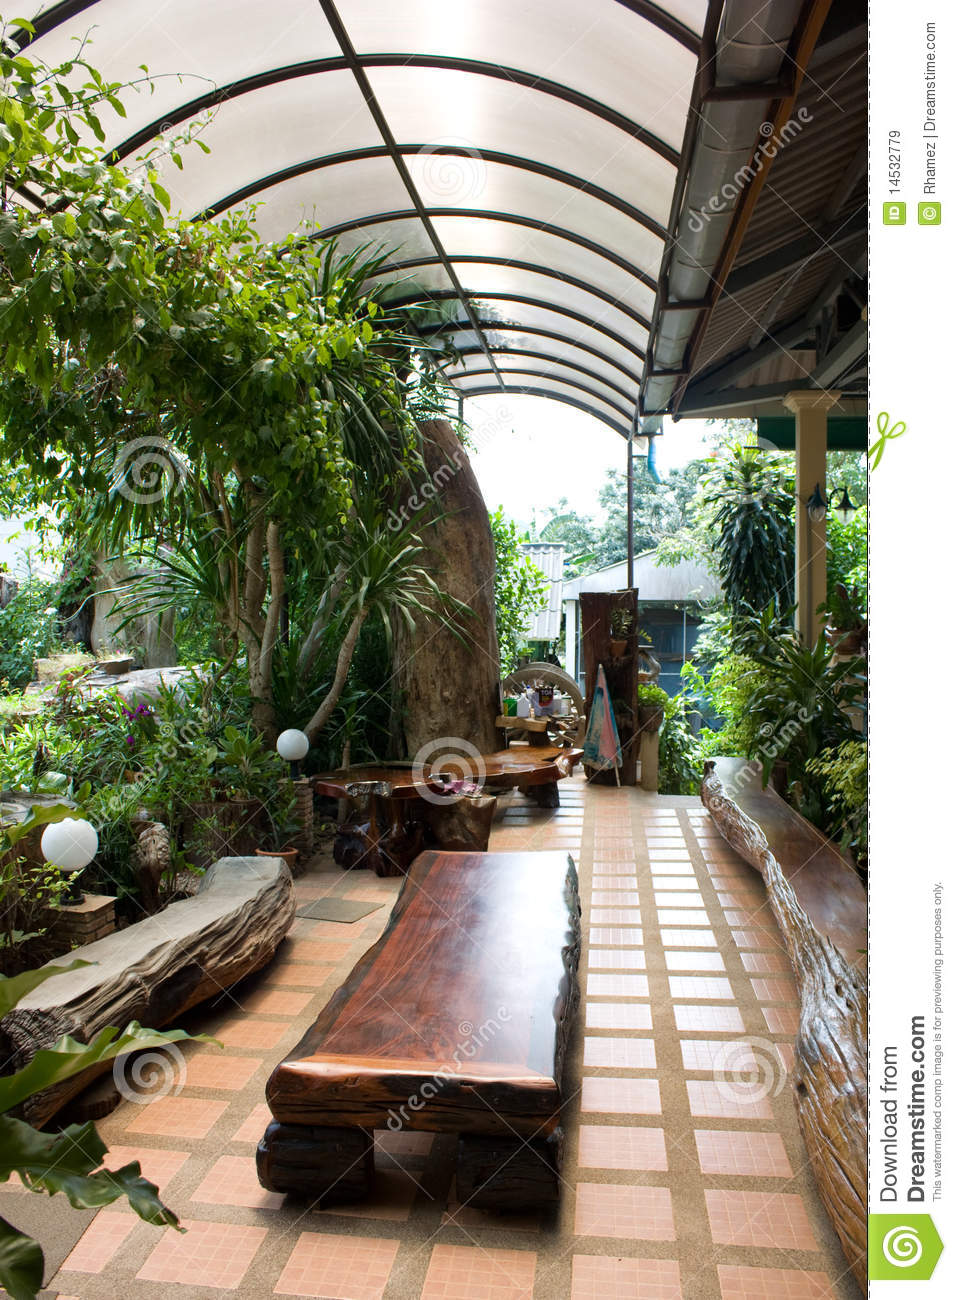 Interior garden royalty free stock images image 14532779 for Garden home interiors